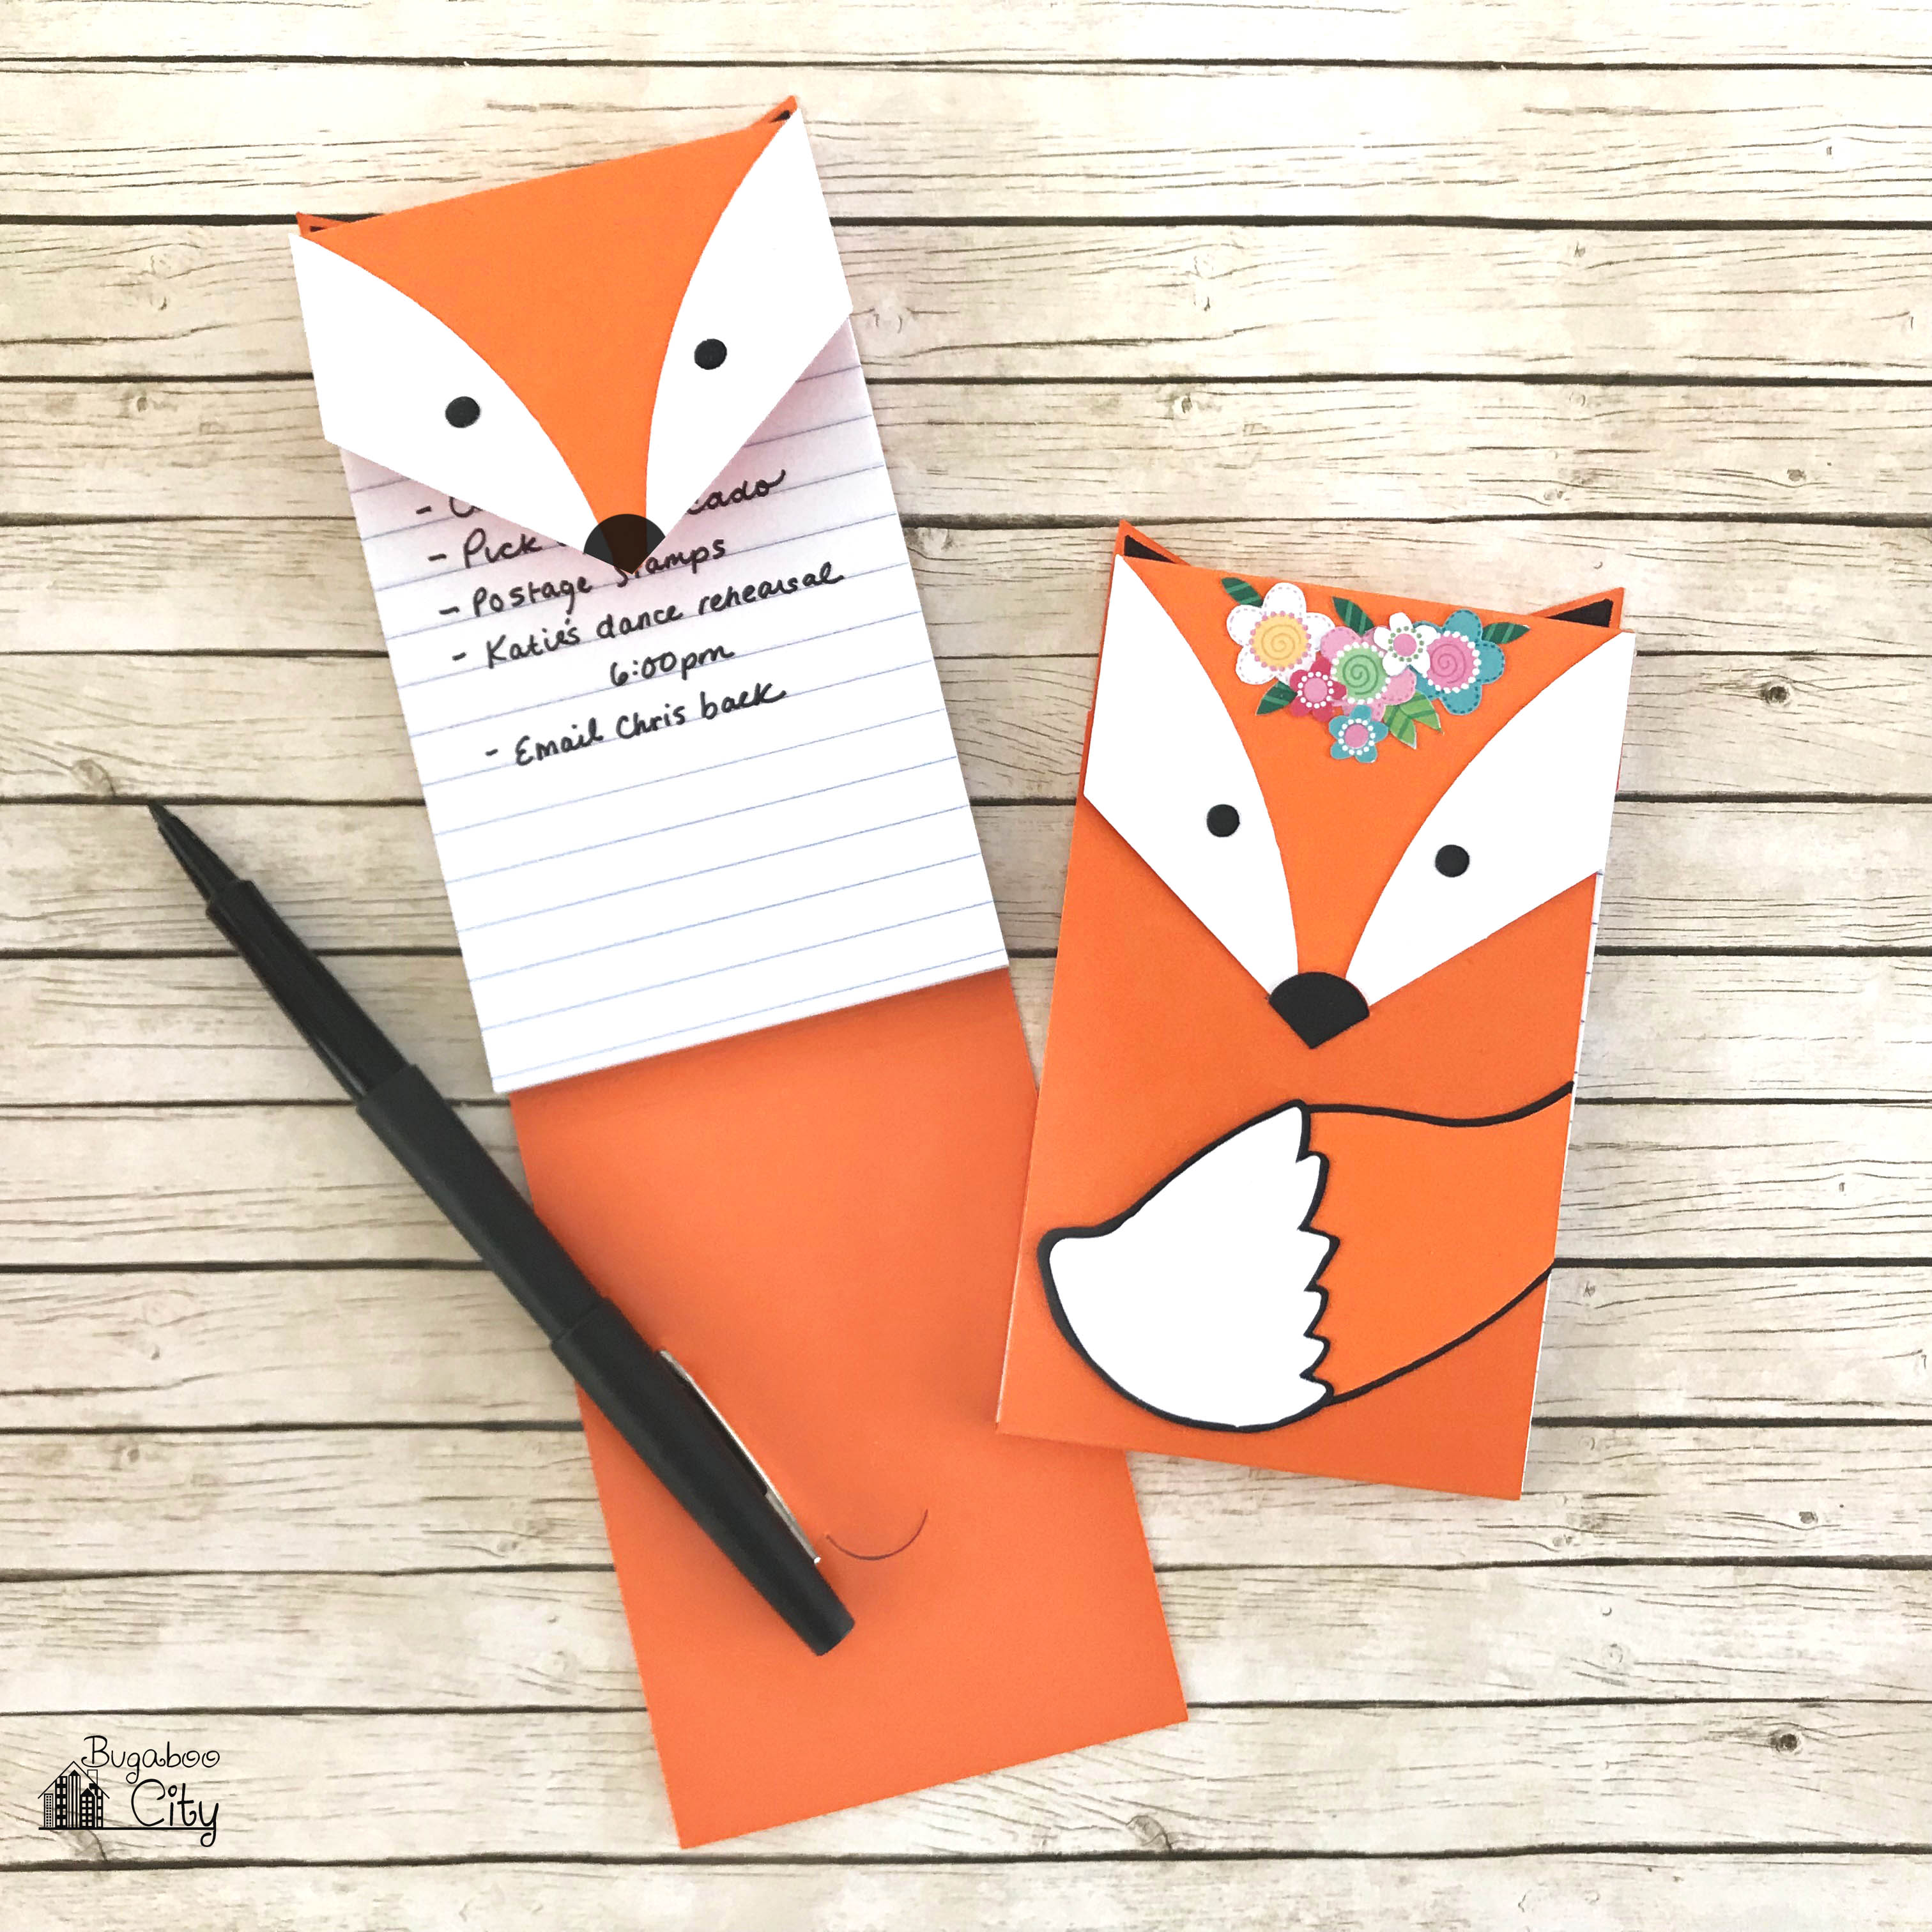 Sweet fox notepads laying on a wooden table with a black pen.